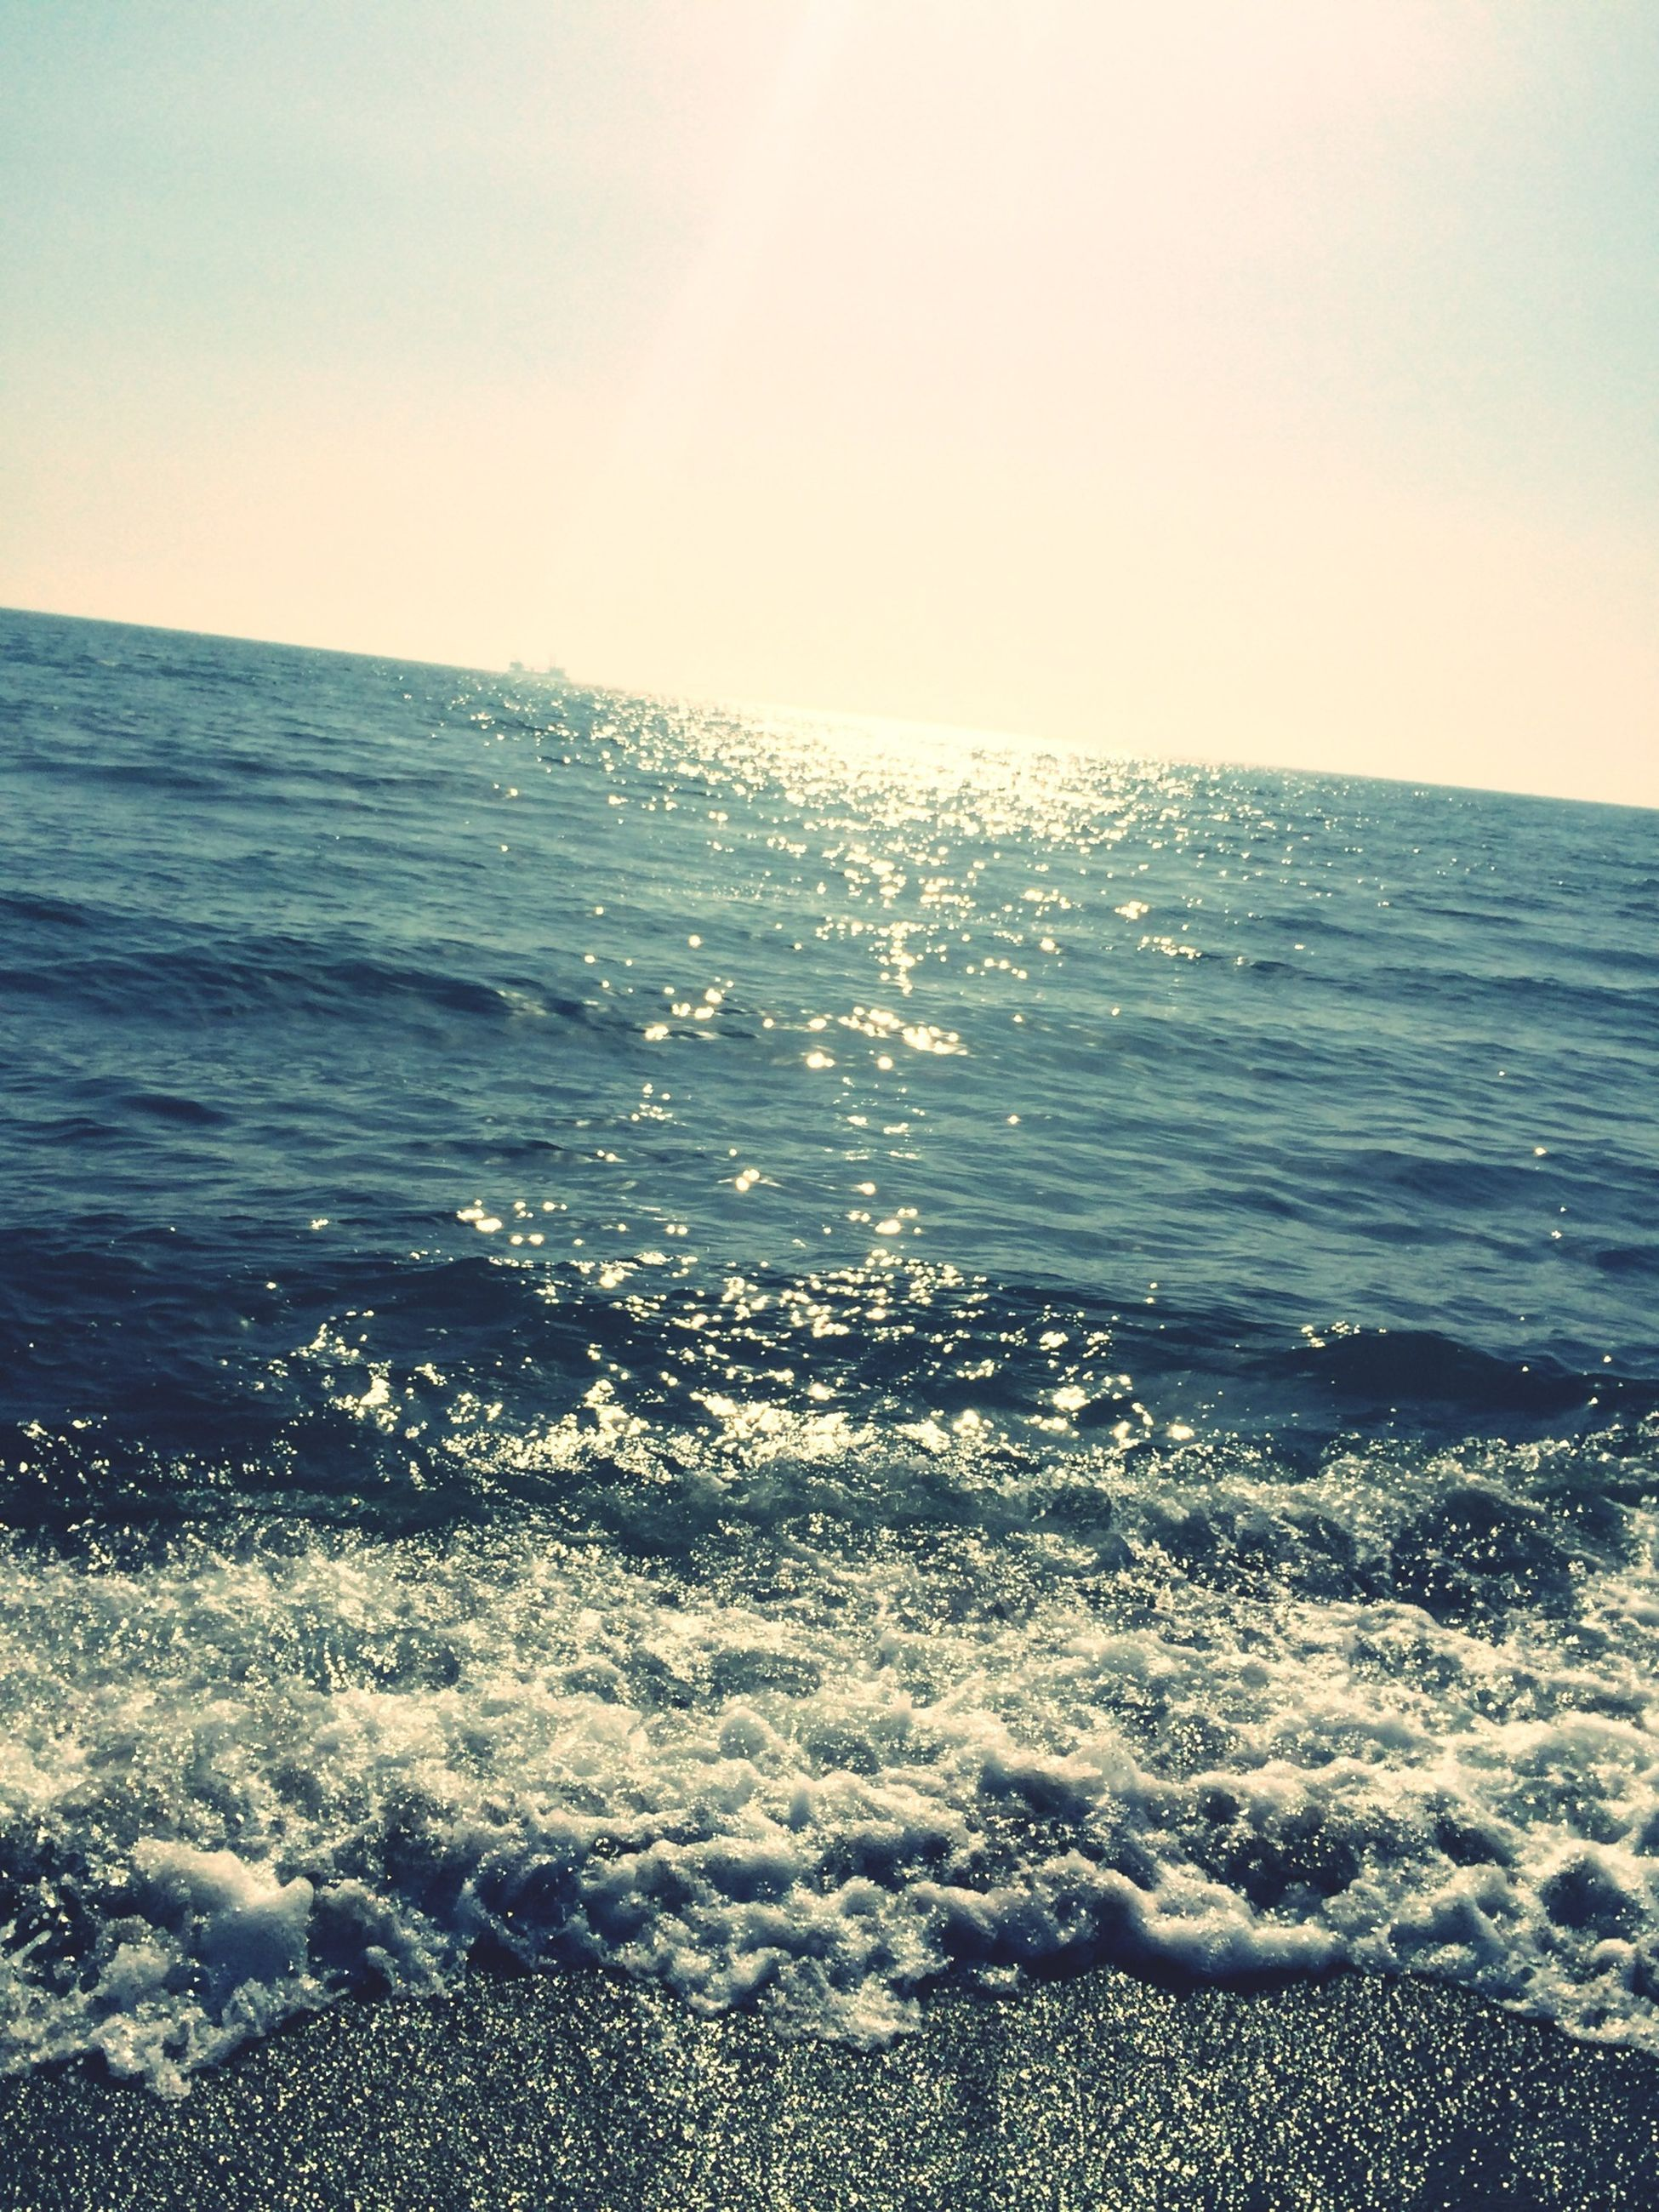 sea, water, horizon over water, scenics, beauty in nature, tranquil scene, wave, beach, tranquility, nature, seascape, sky, clear sky, shore, idyllic, rippled, sun, surf, sunlight, waterfront